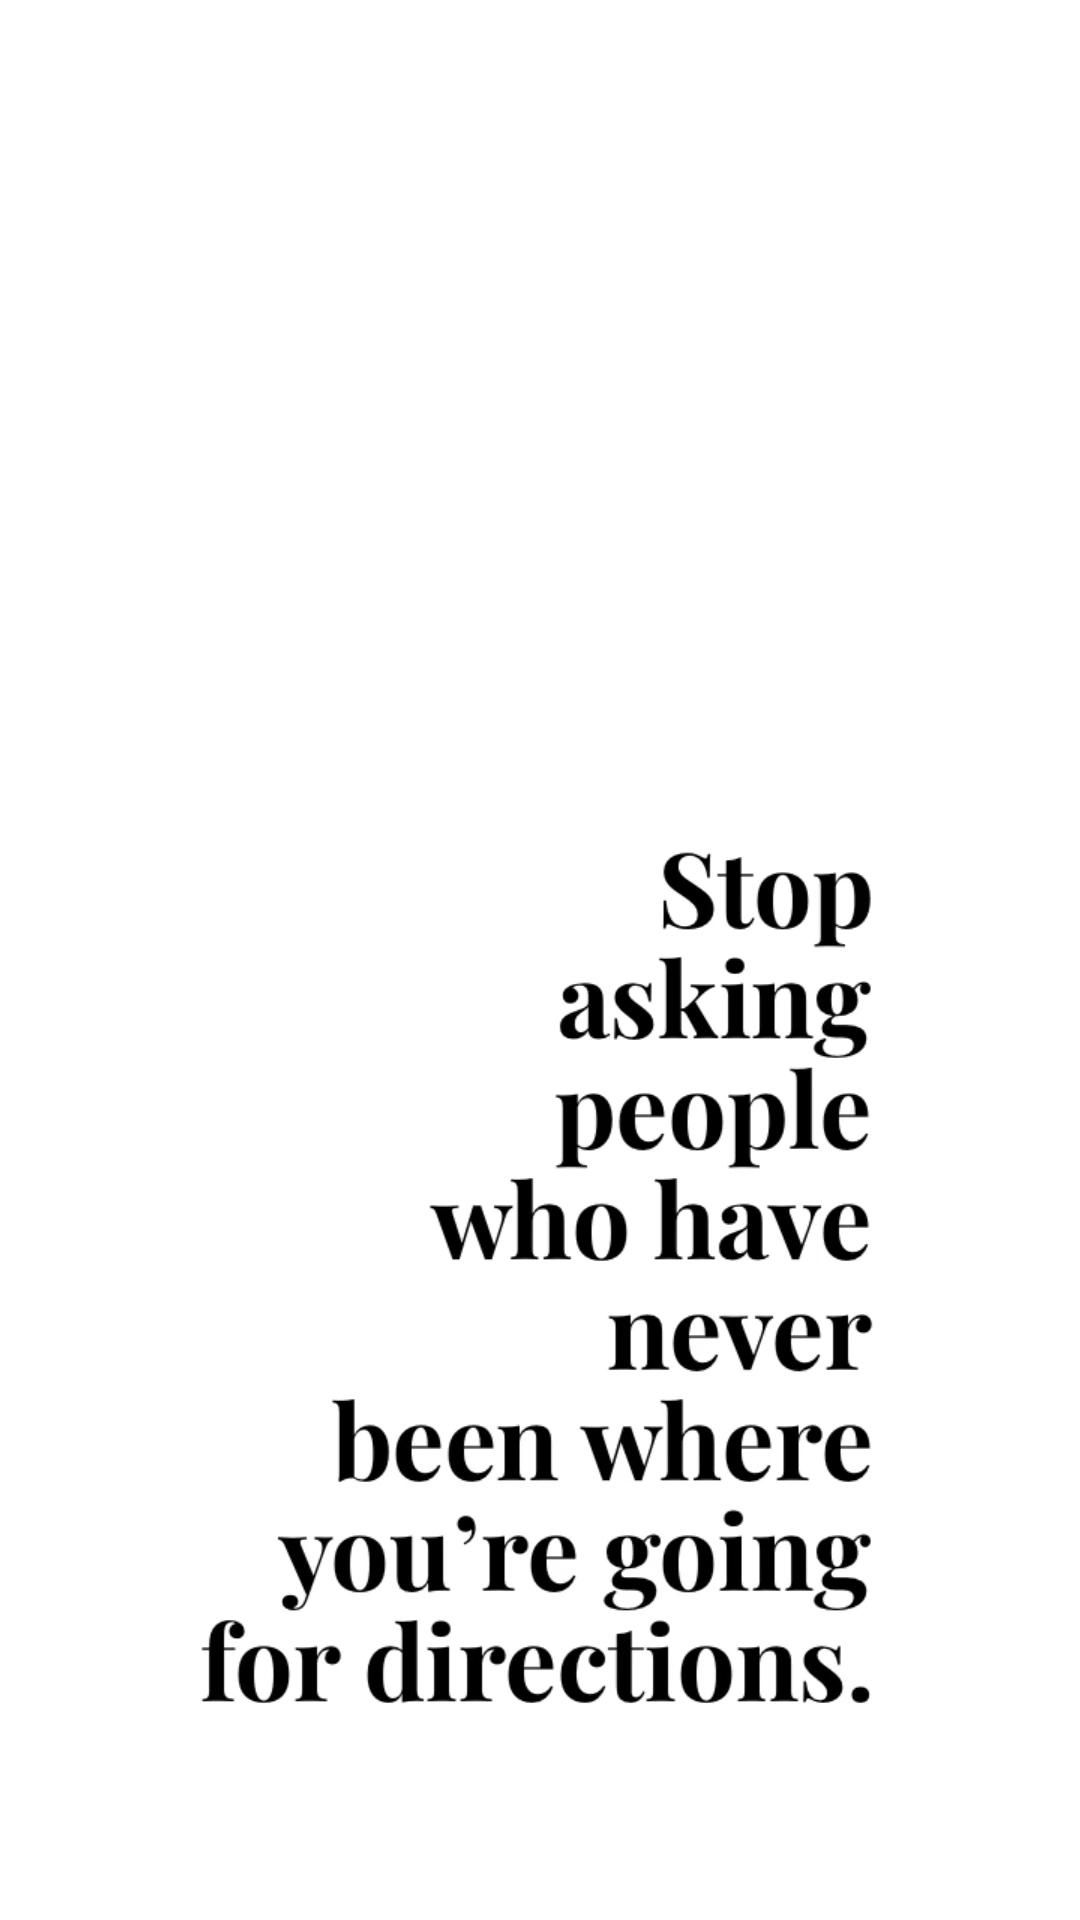 Please Don't. Discover Your Path.